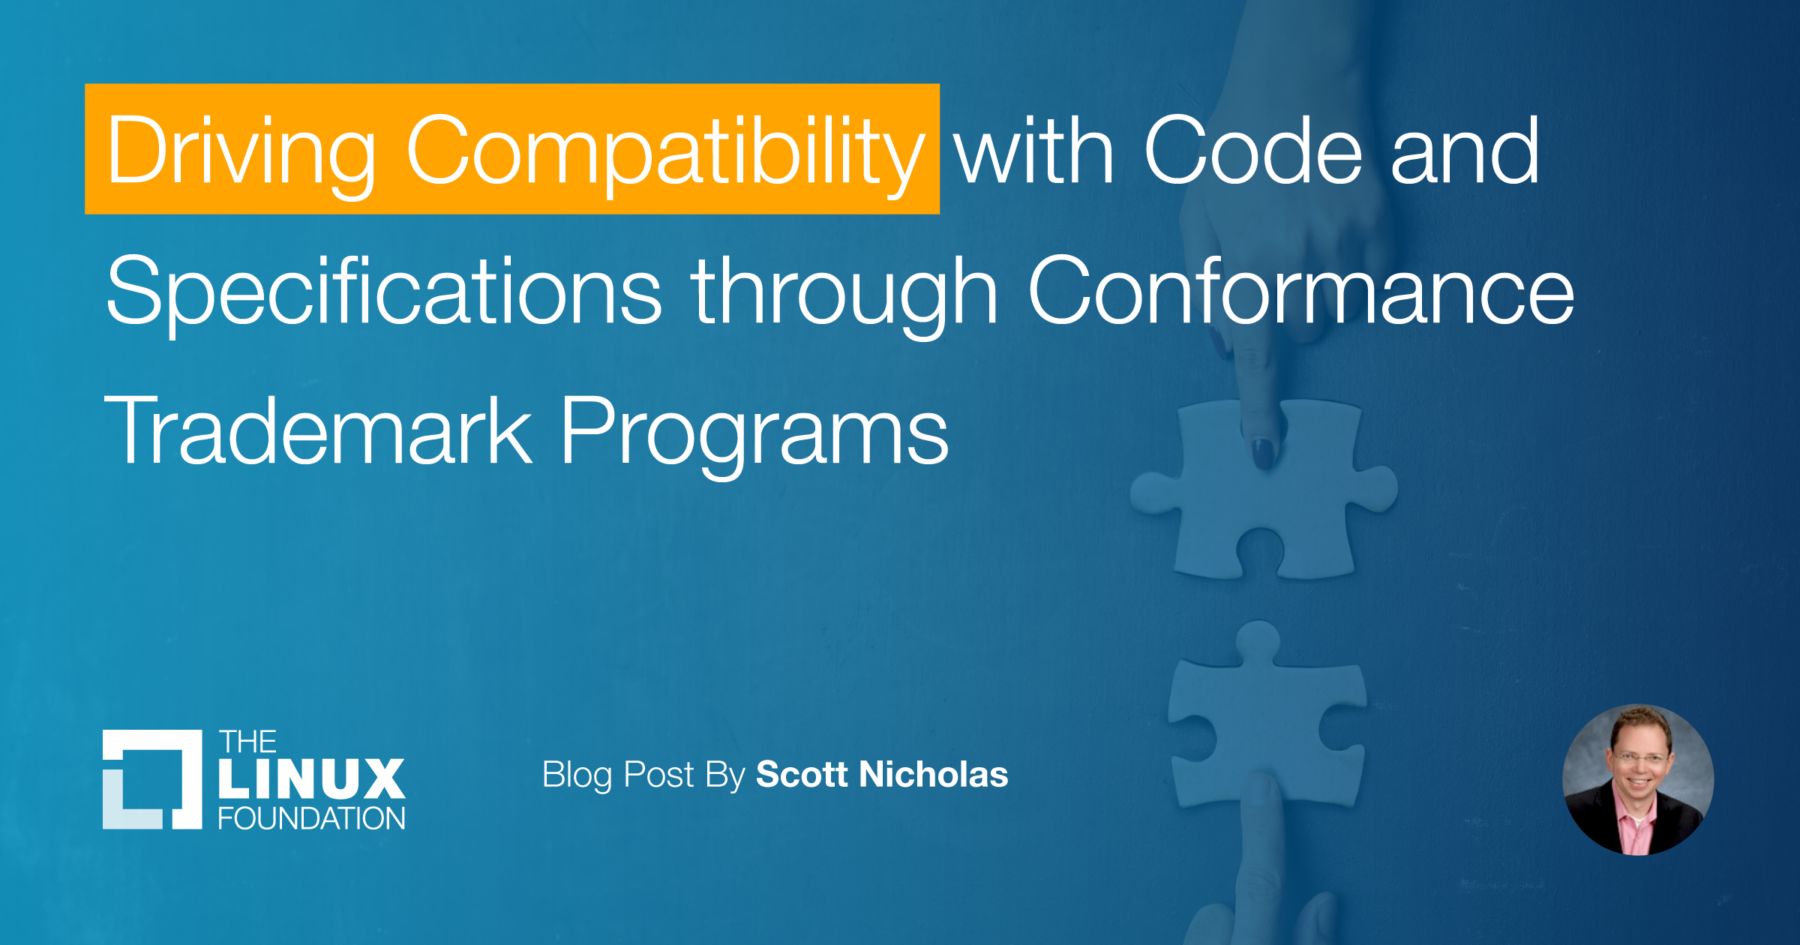 Driving Compatibility with Code and Specifications through Conformance Trademark Programs